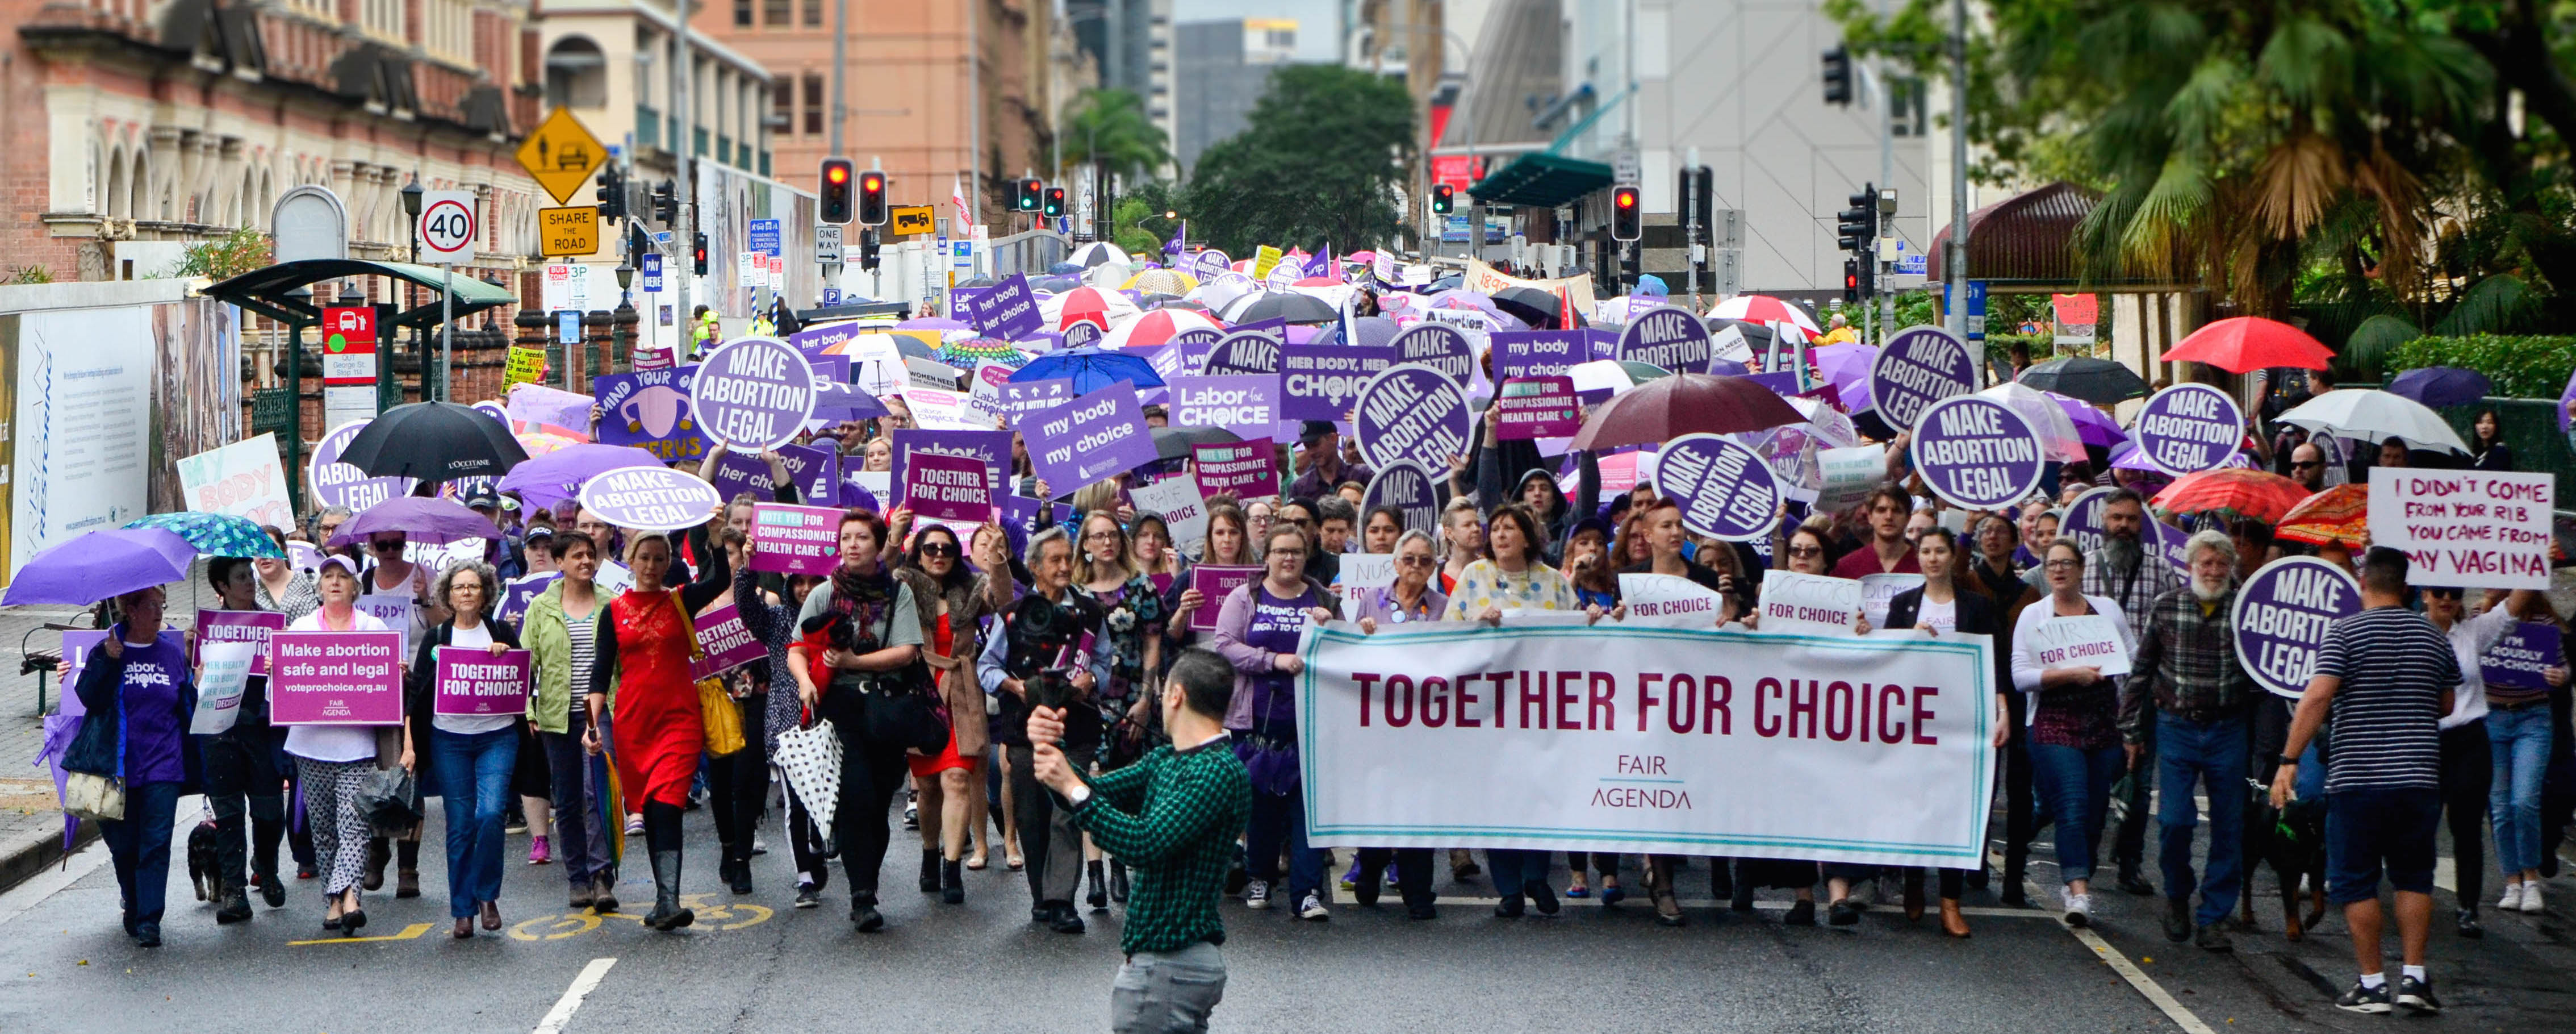 March Together for Choice